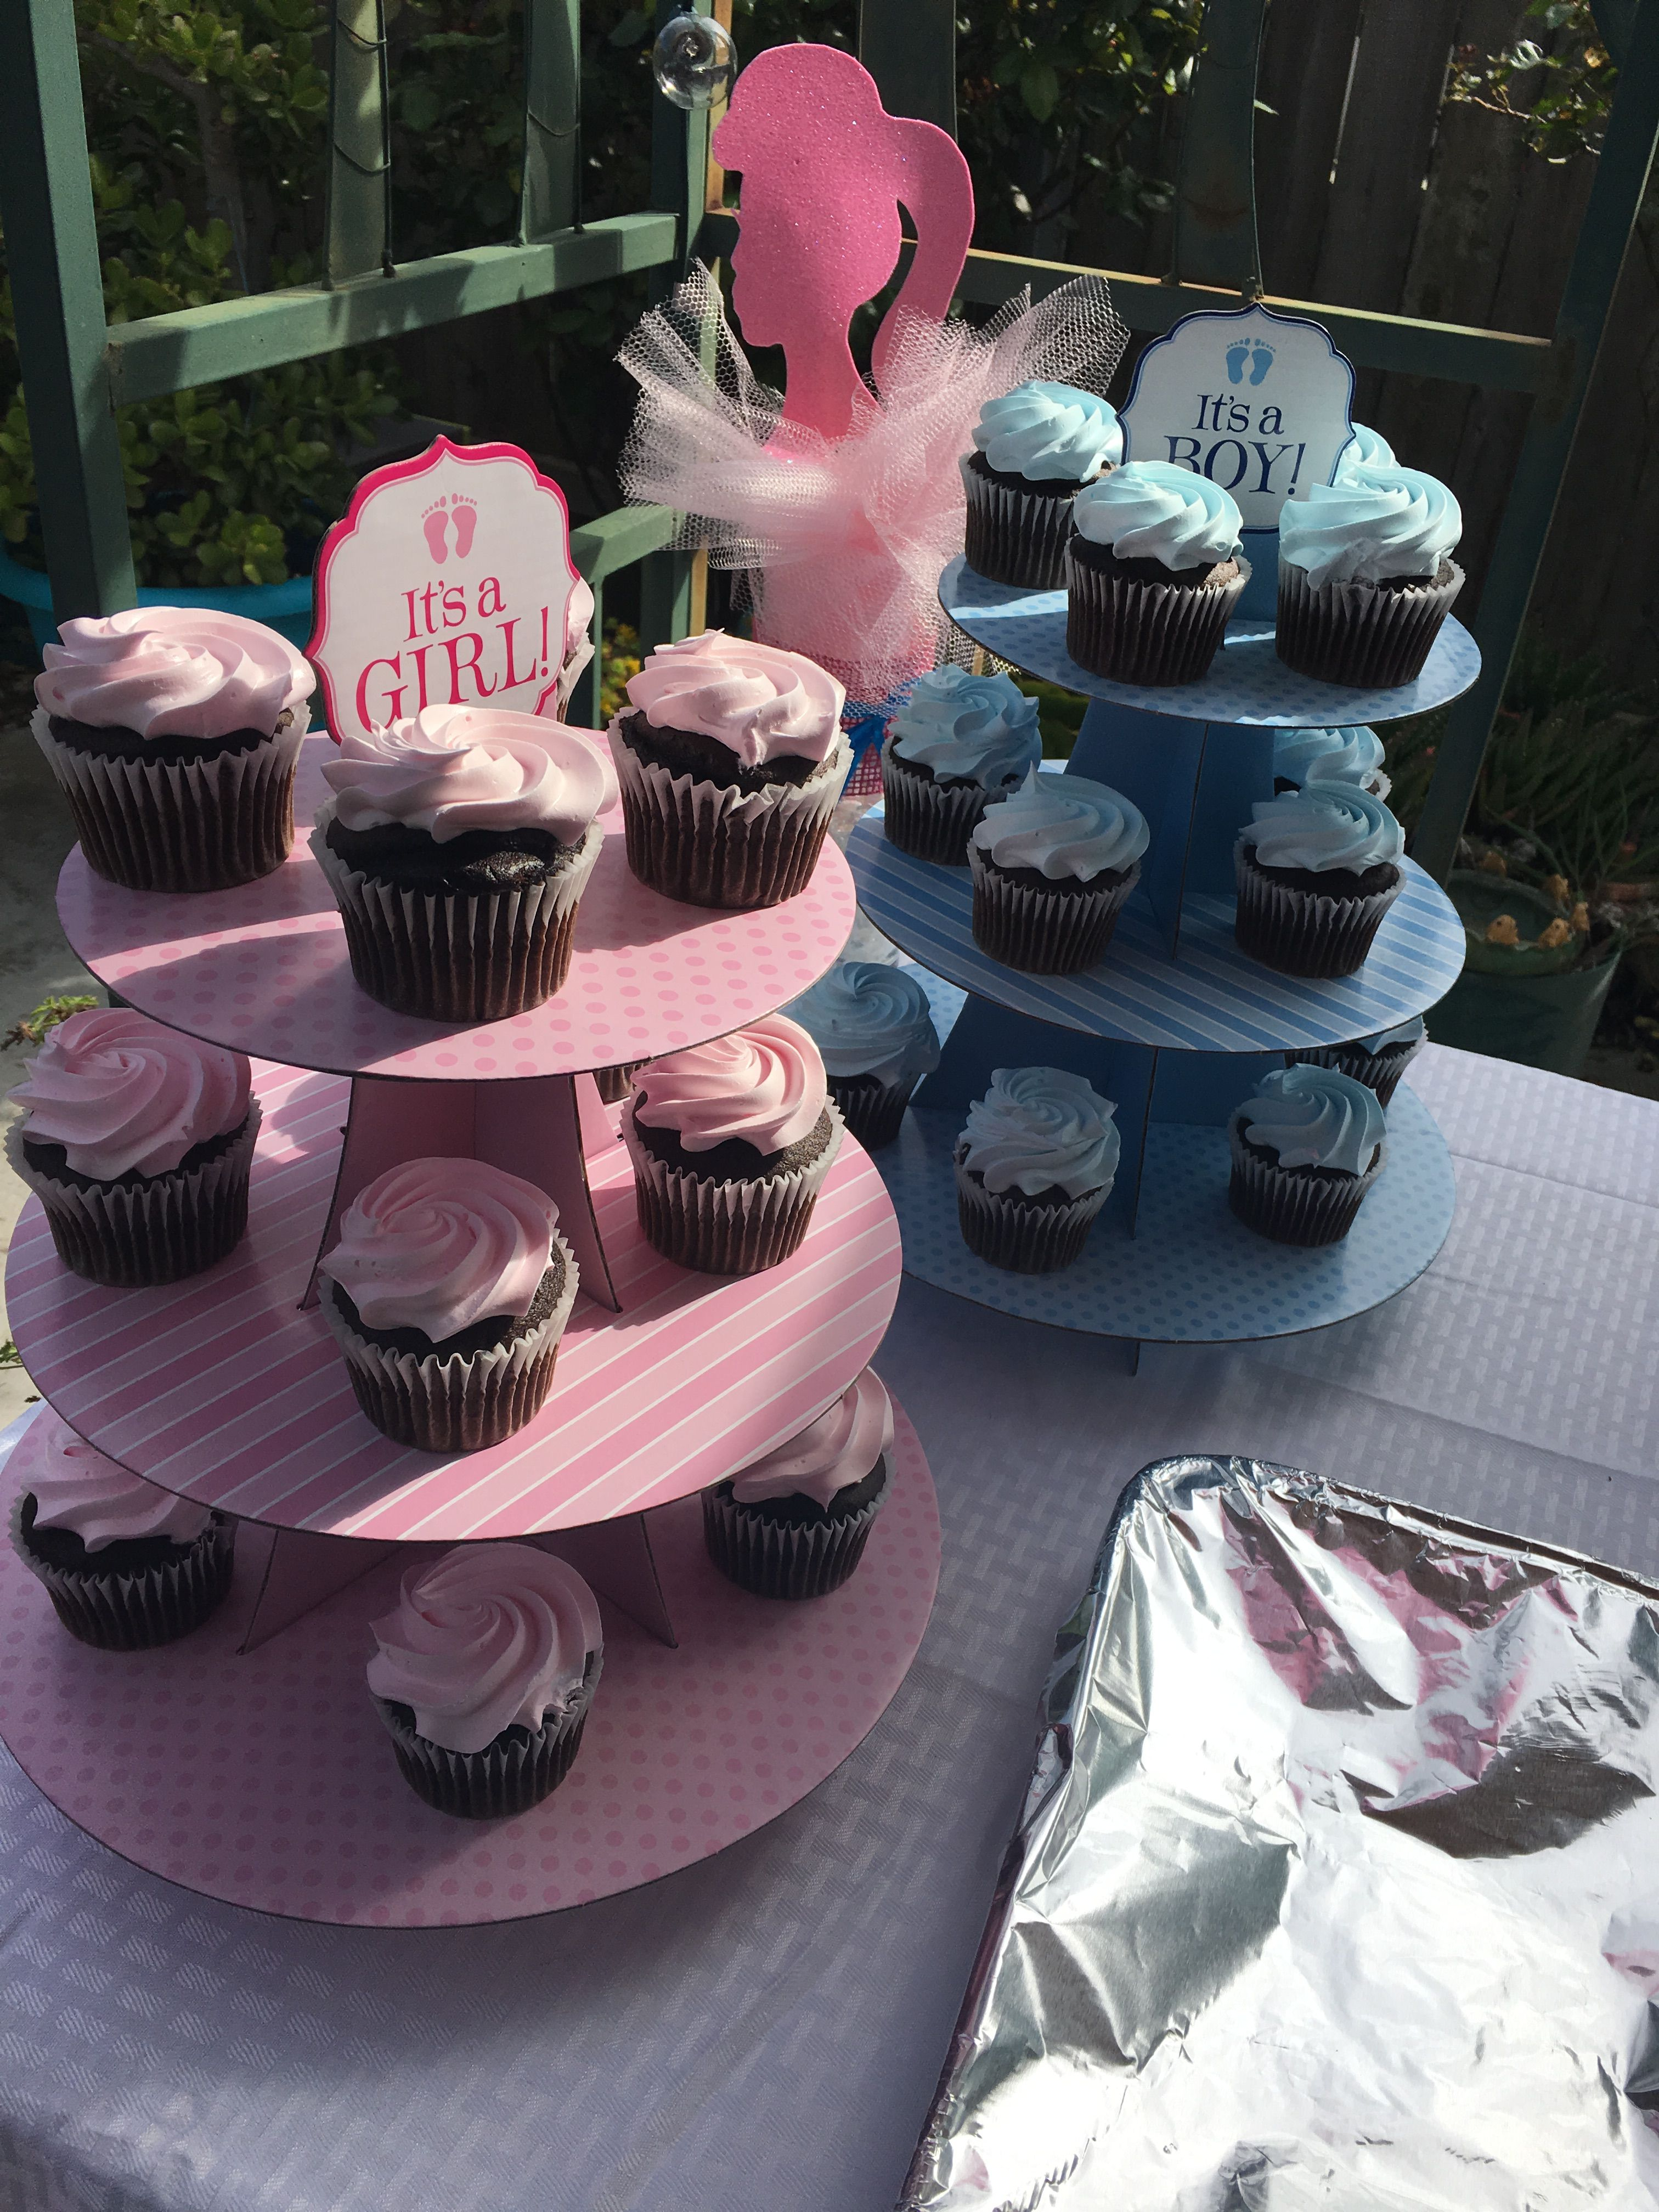 Blue And Pink Cupcakes Cupcakes Stands Are From Hobby Lobby Cupcakes From Our Supermarket Gender Reveal Cupcakes Cupcake Stand Baby Gender Reveal